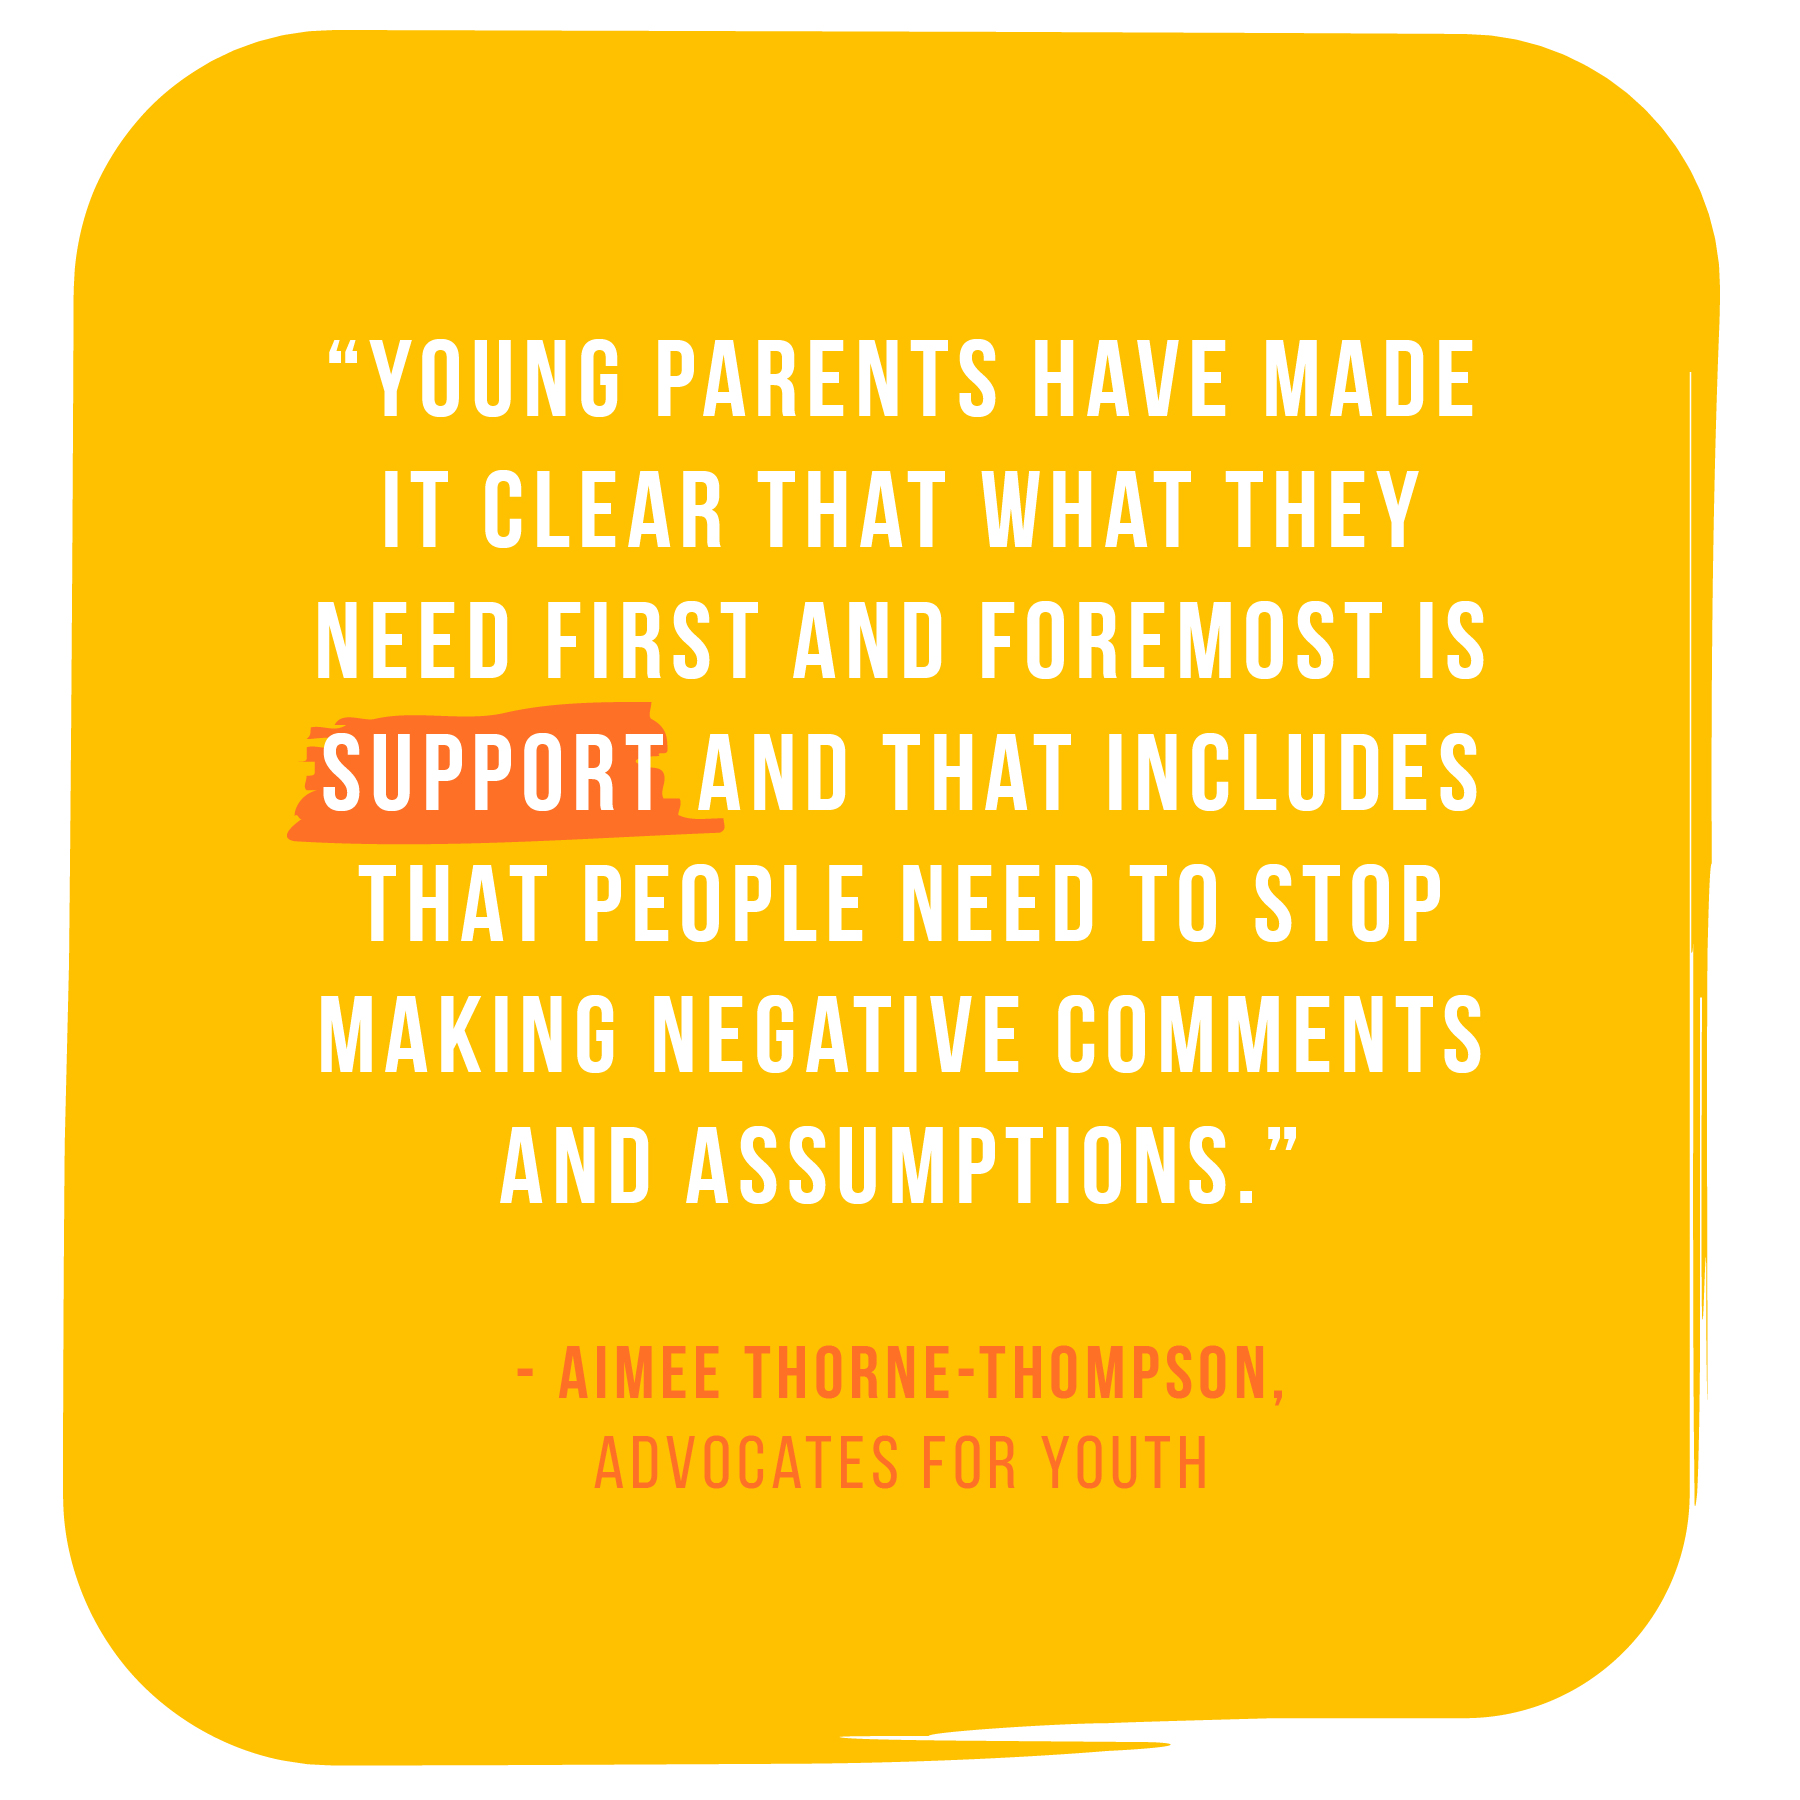 Resilience Quotes Stigma And Resilience Supporting Young Parents And Two Sides To